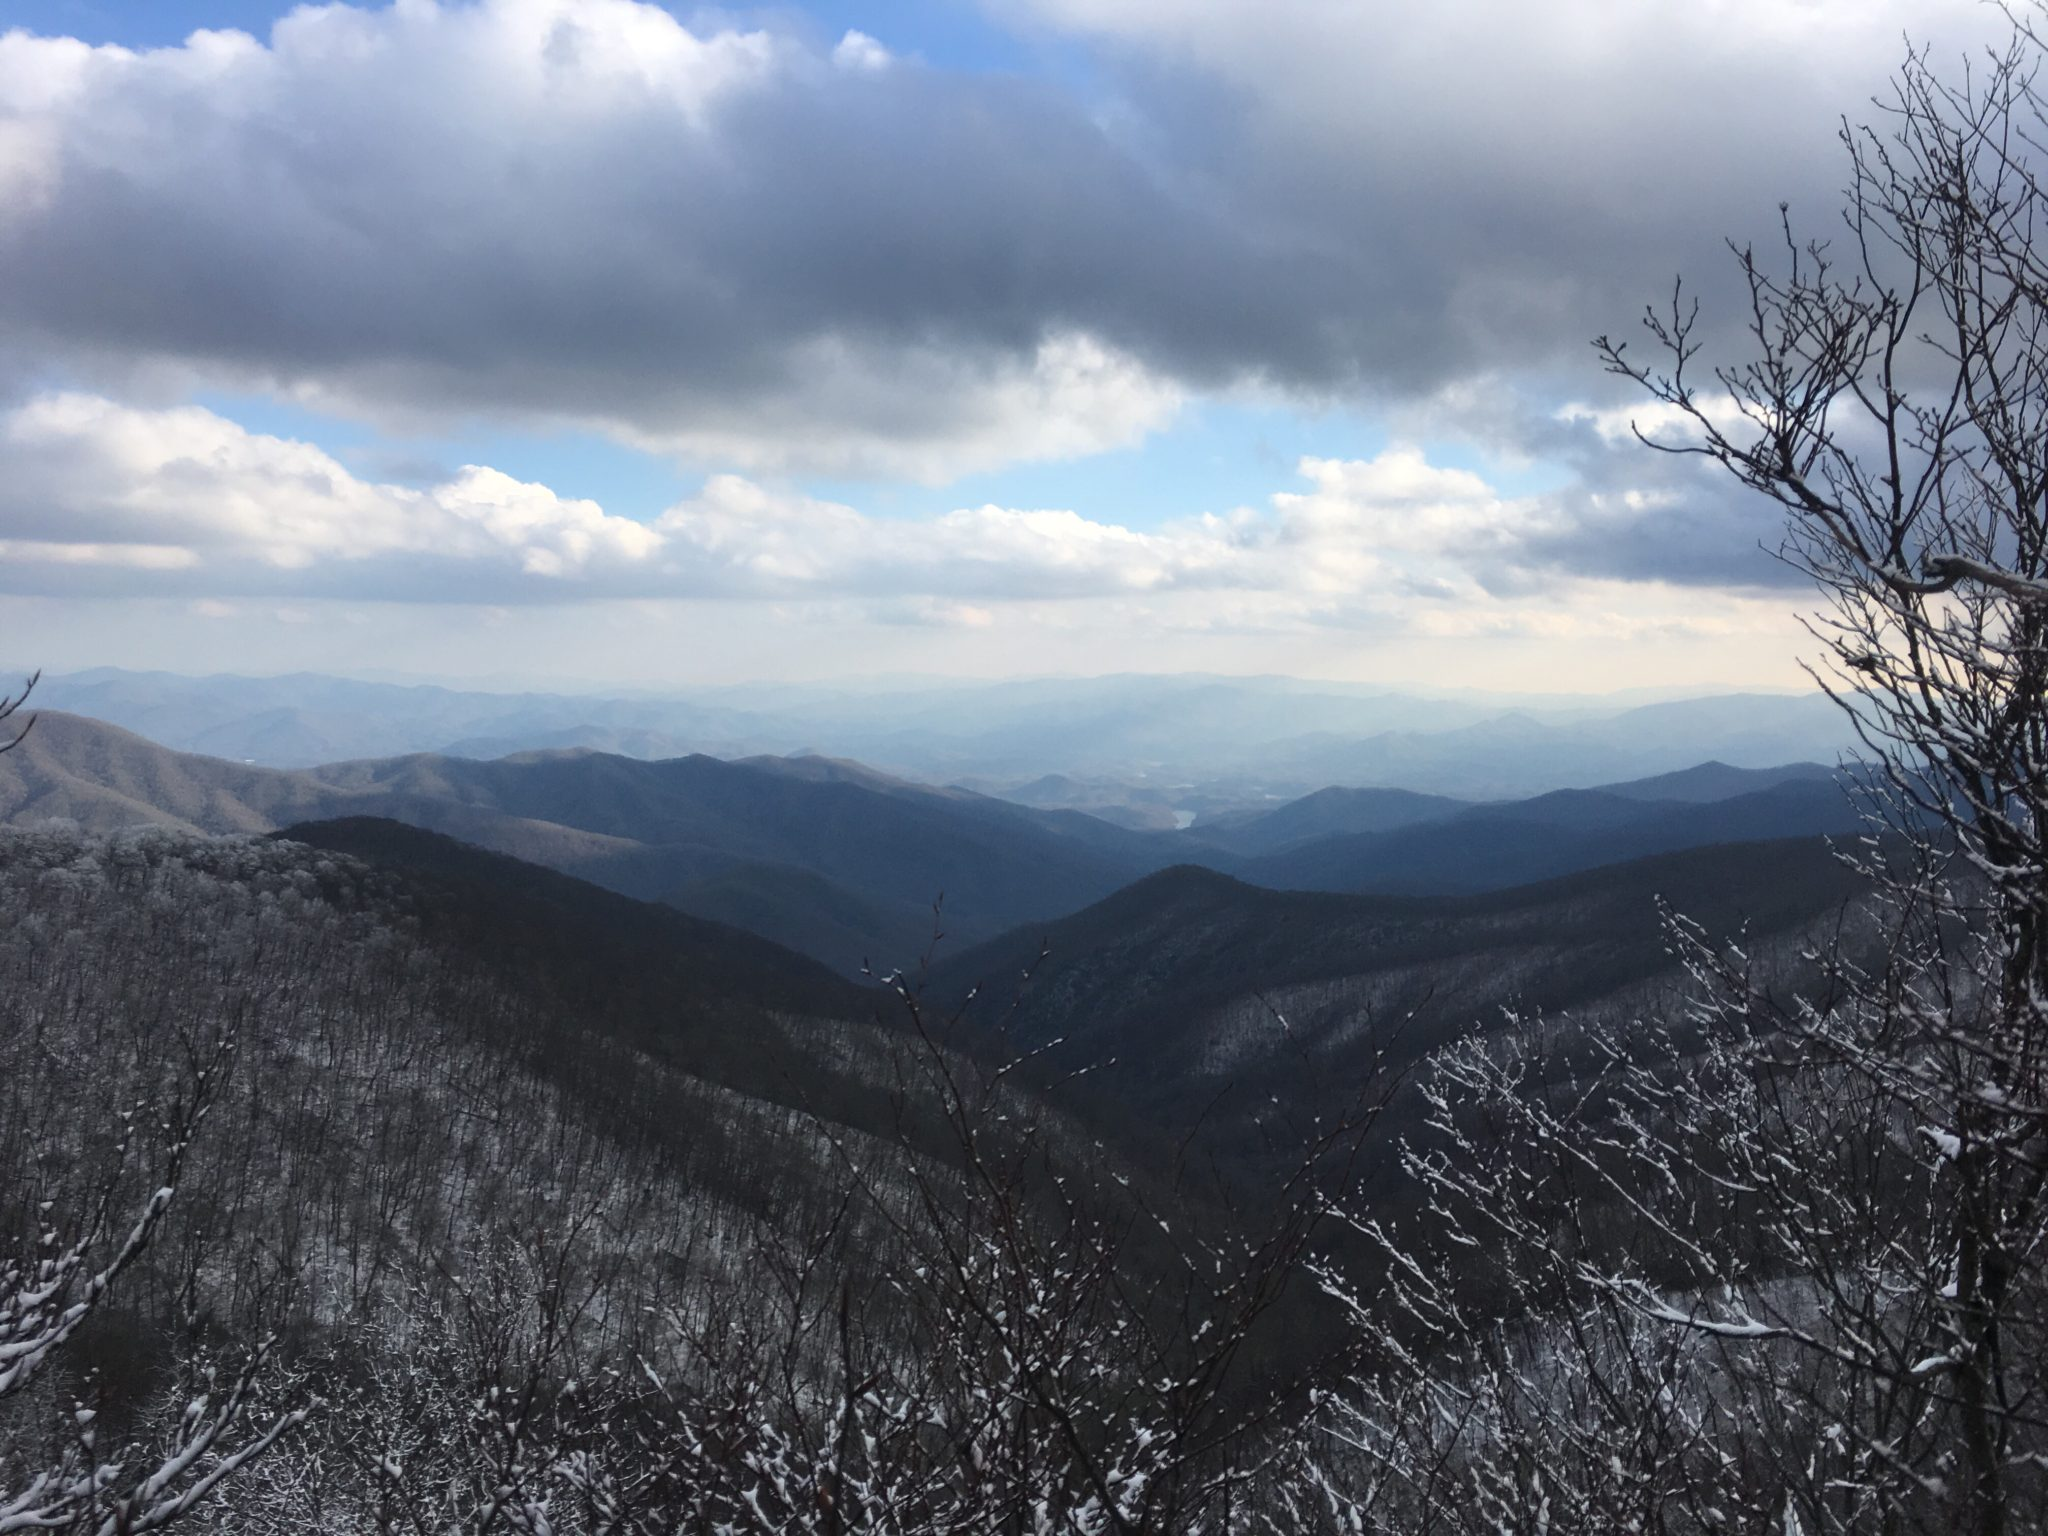 Finally, a decent view of the Smokies